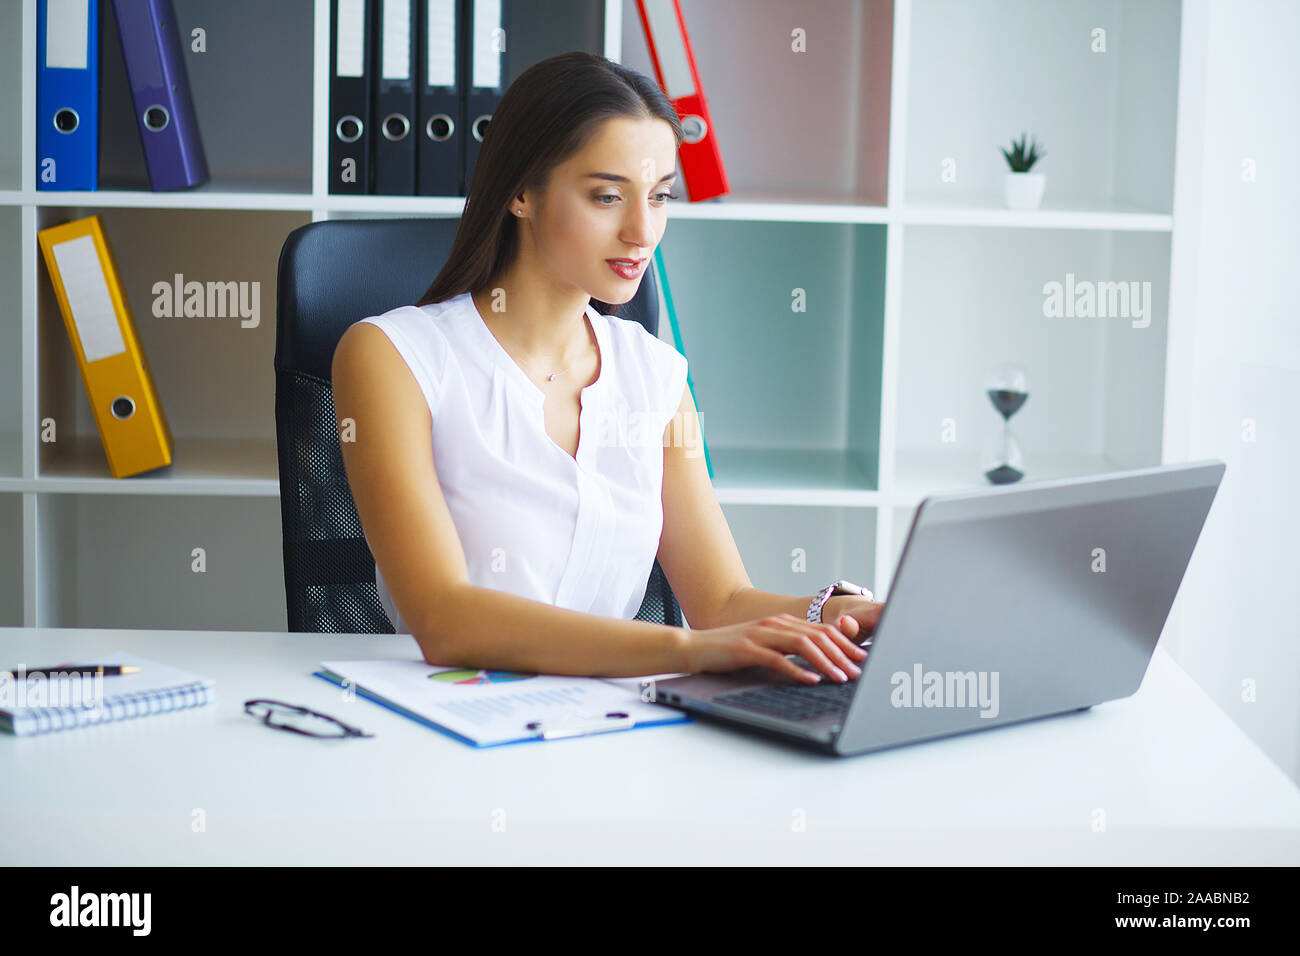 Woman sitting at desk, working on laptop in modern office Stock Photo